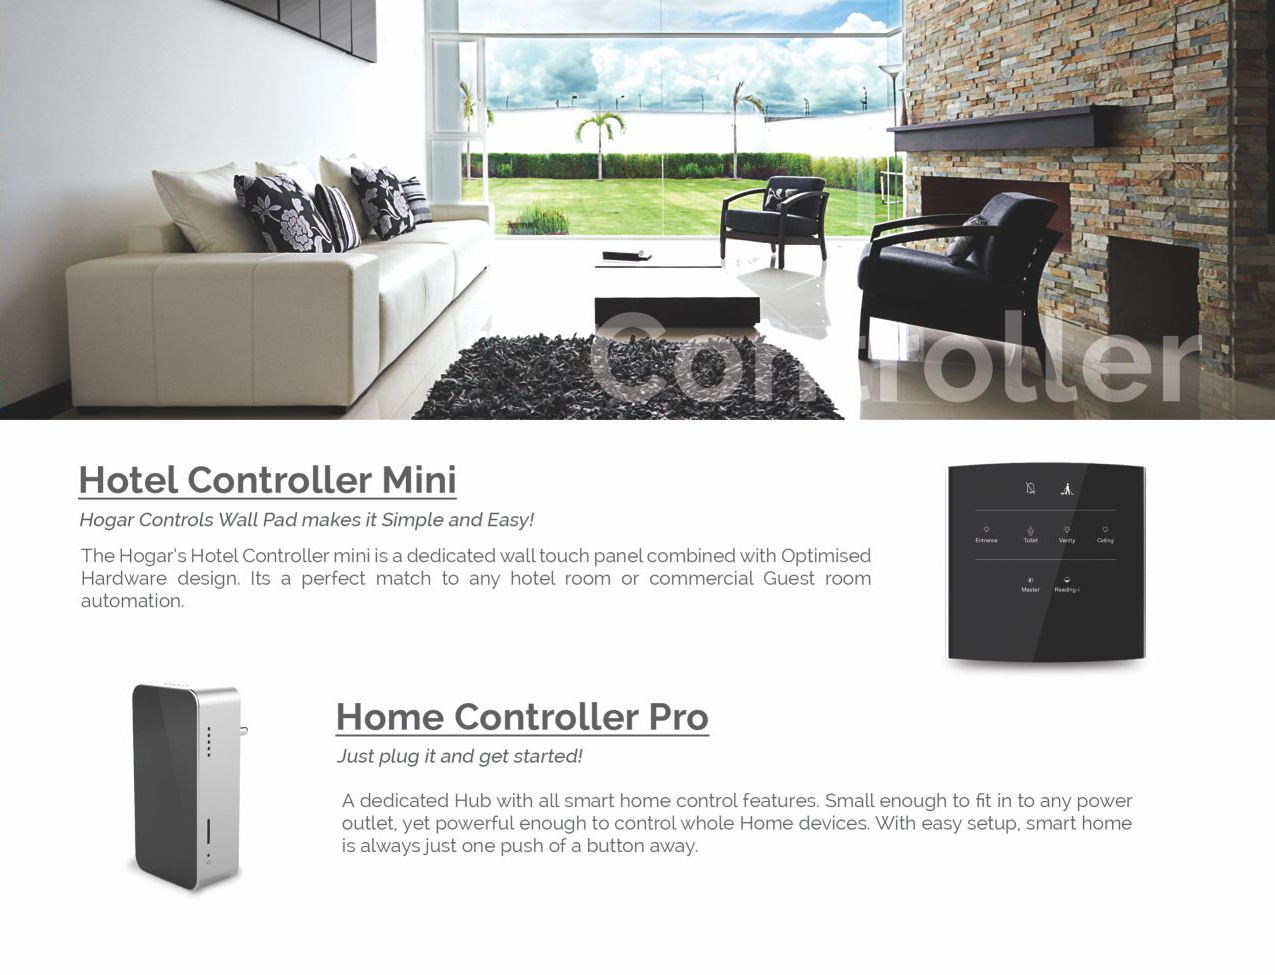 Hogar controls smart home mini controller or home controller pro many options to choose from